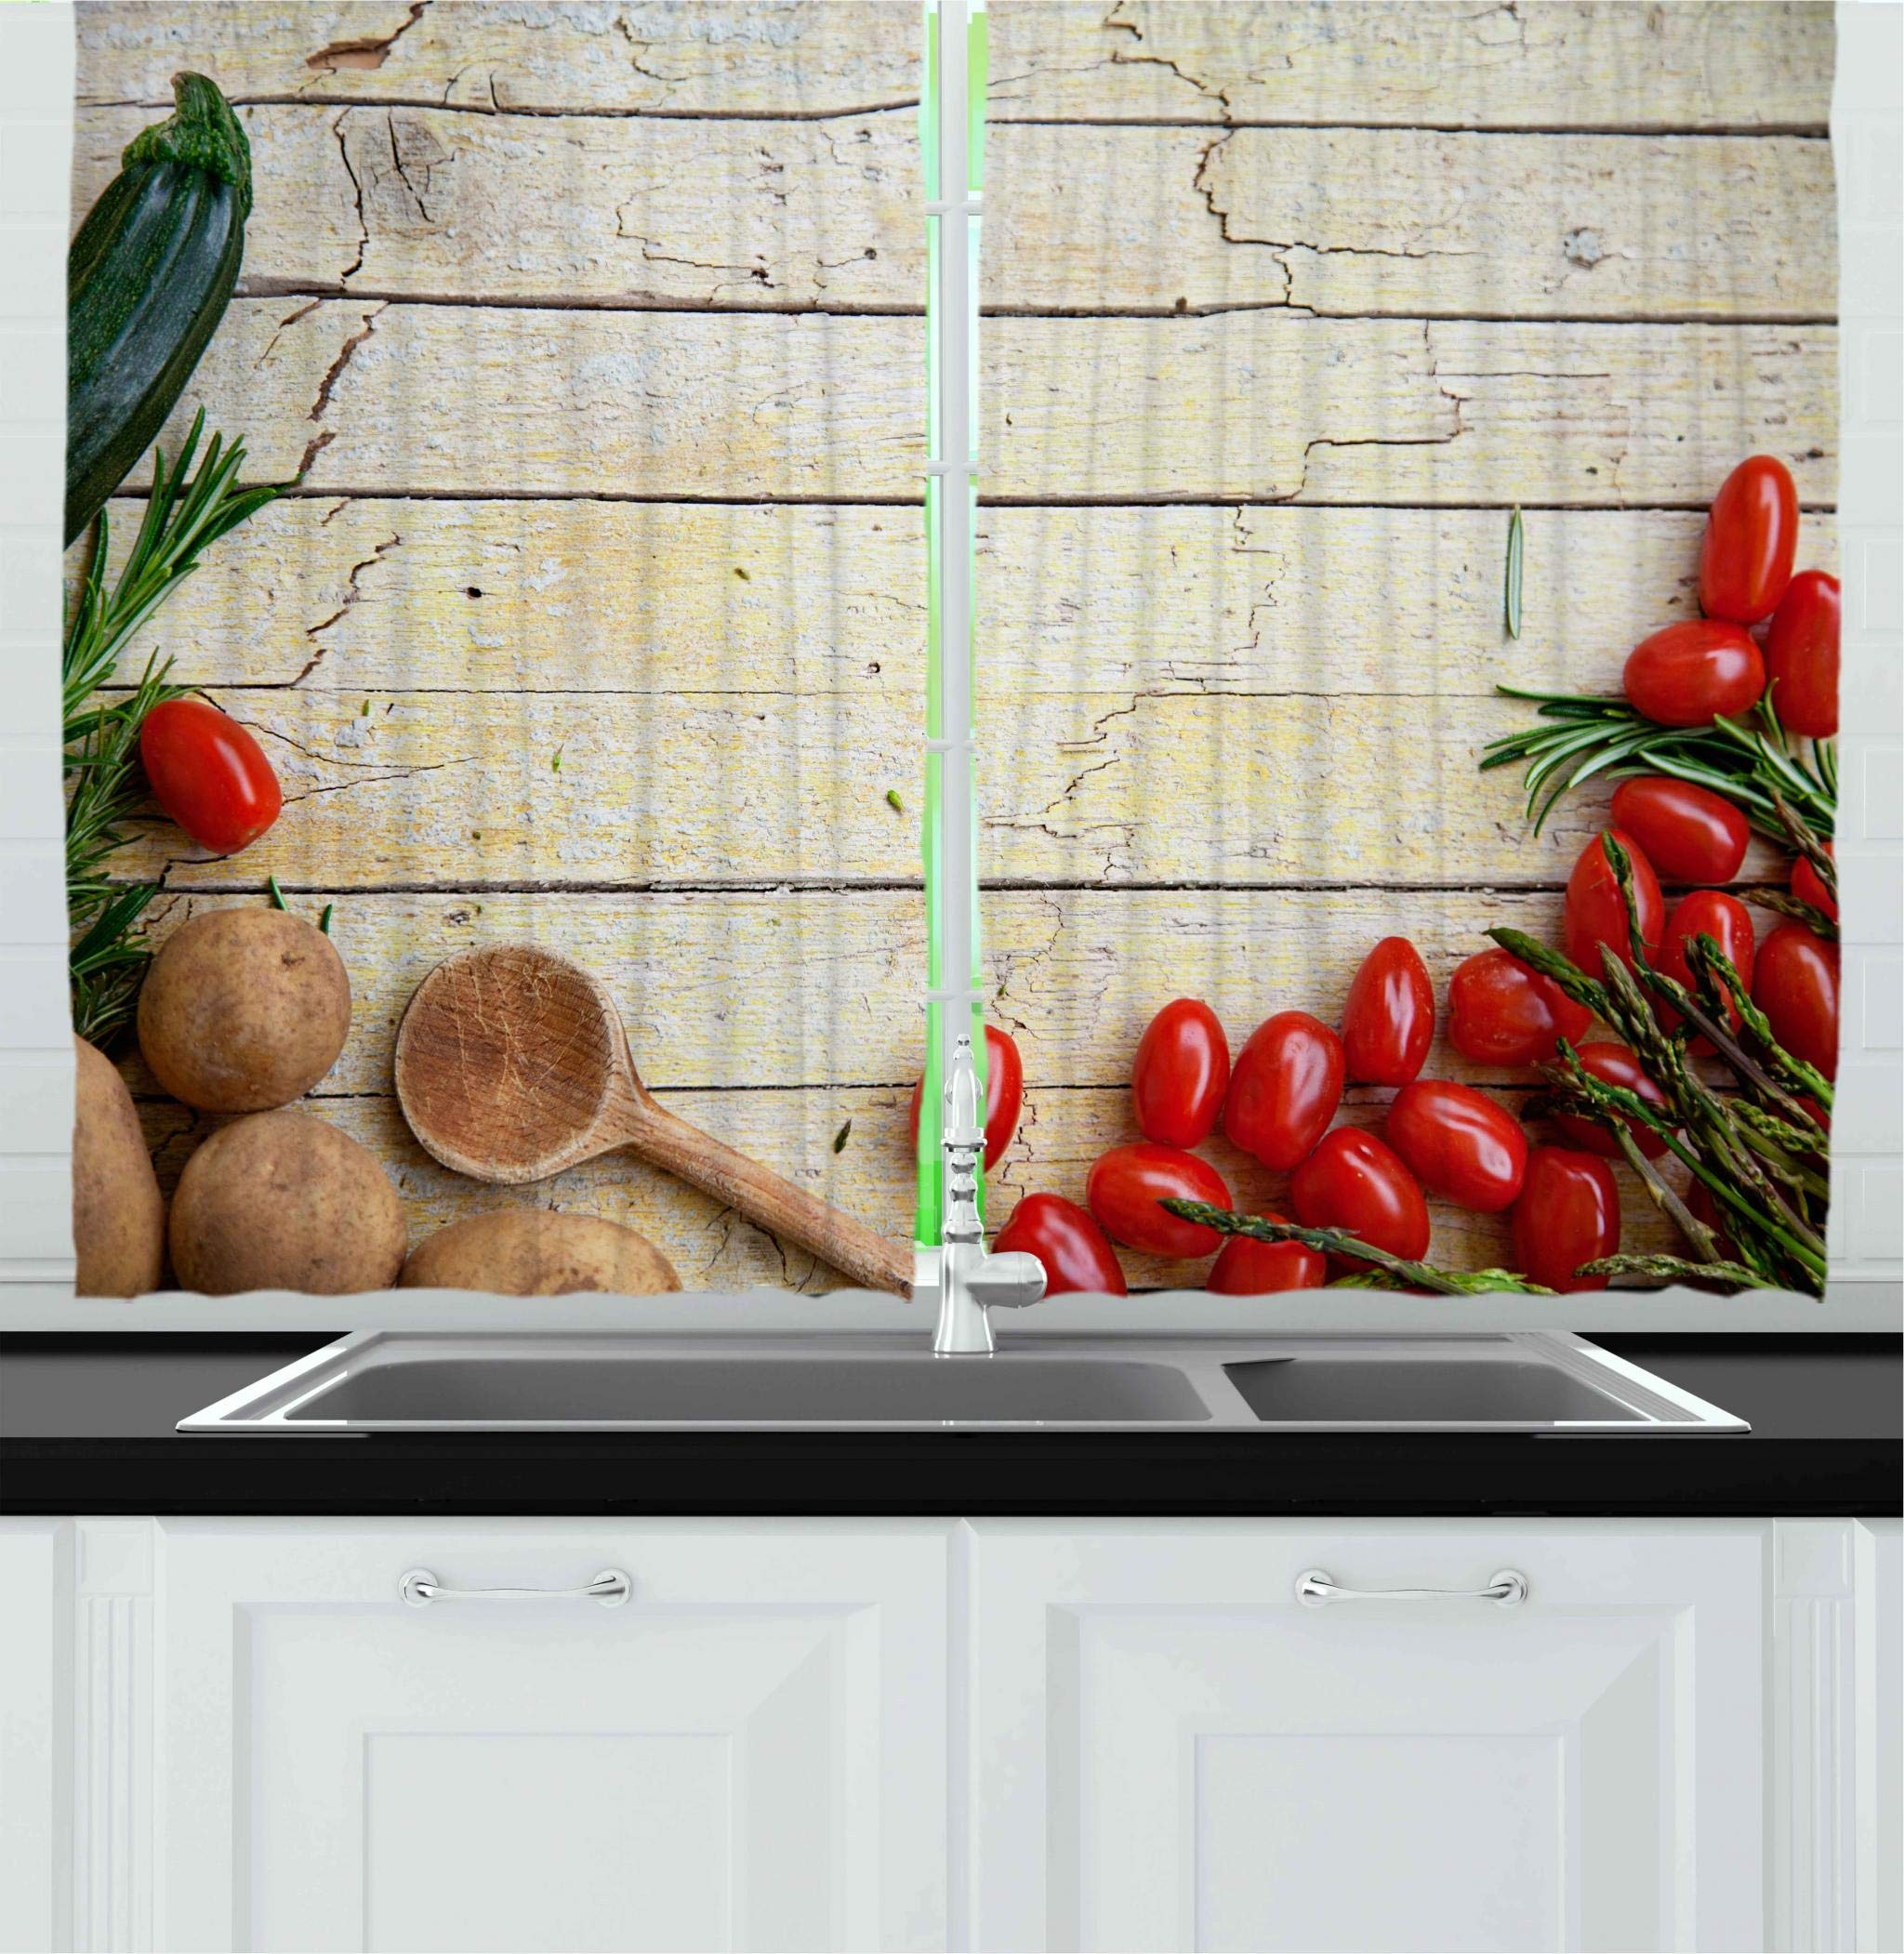 Ambesonne Kitchen Decor Collection, Cooking Vegetables Recipe Kitchenware Chef Rustic Wood Organic Utensil Cafe Art, Window Treatments for Kitchen Curtains 2 Panels, 55X39 Inches, Brown Red Green